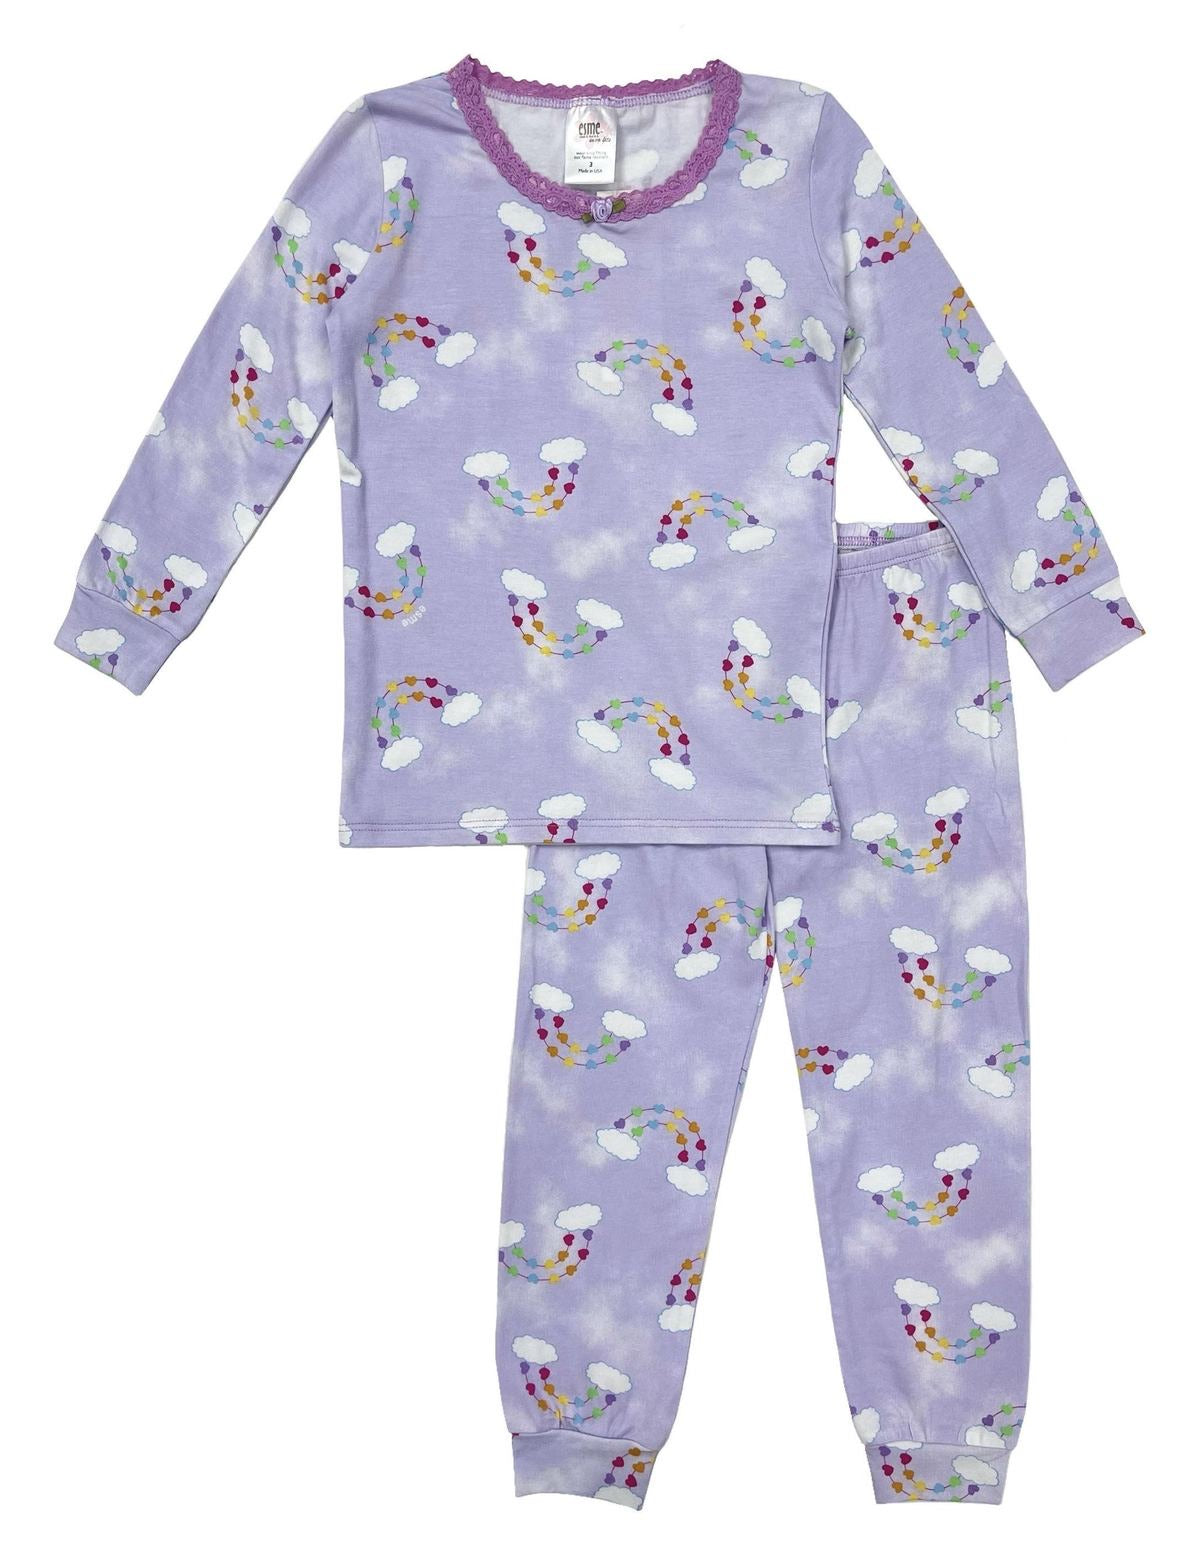 esme Rainbow Heart Clouds with Lace LS Pajama Set